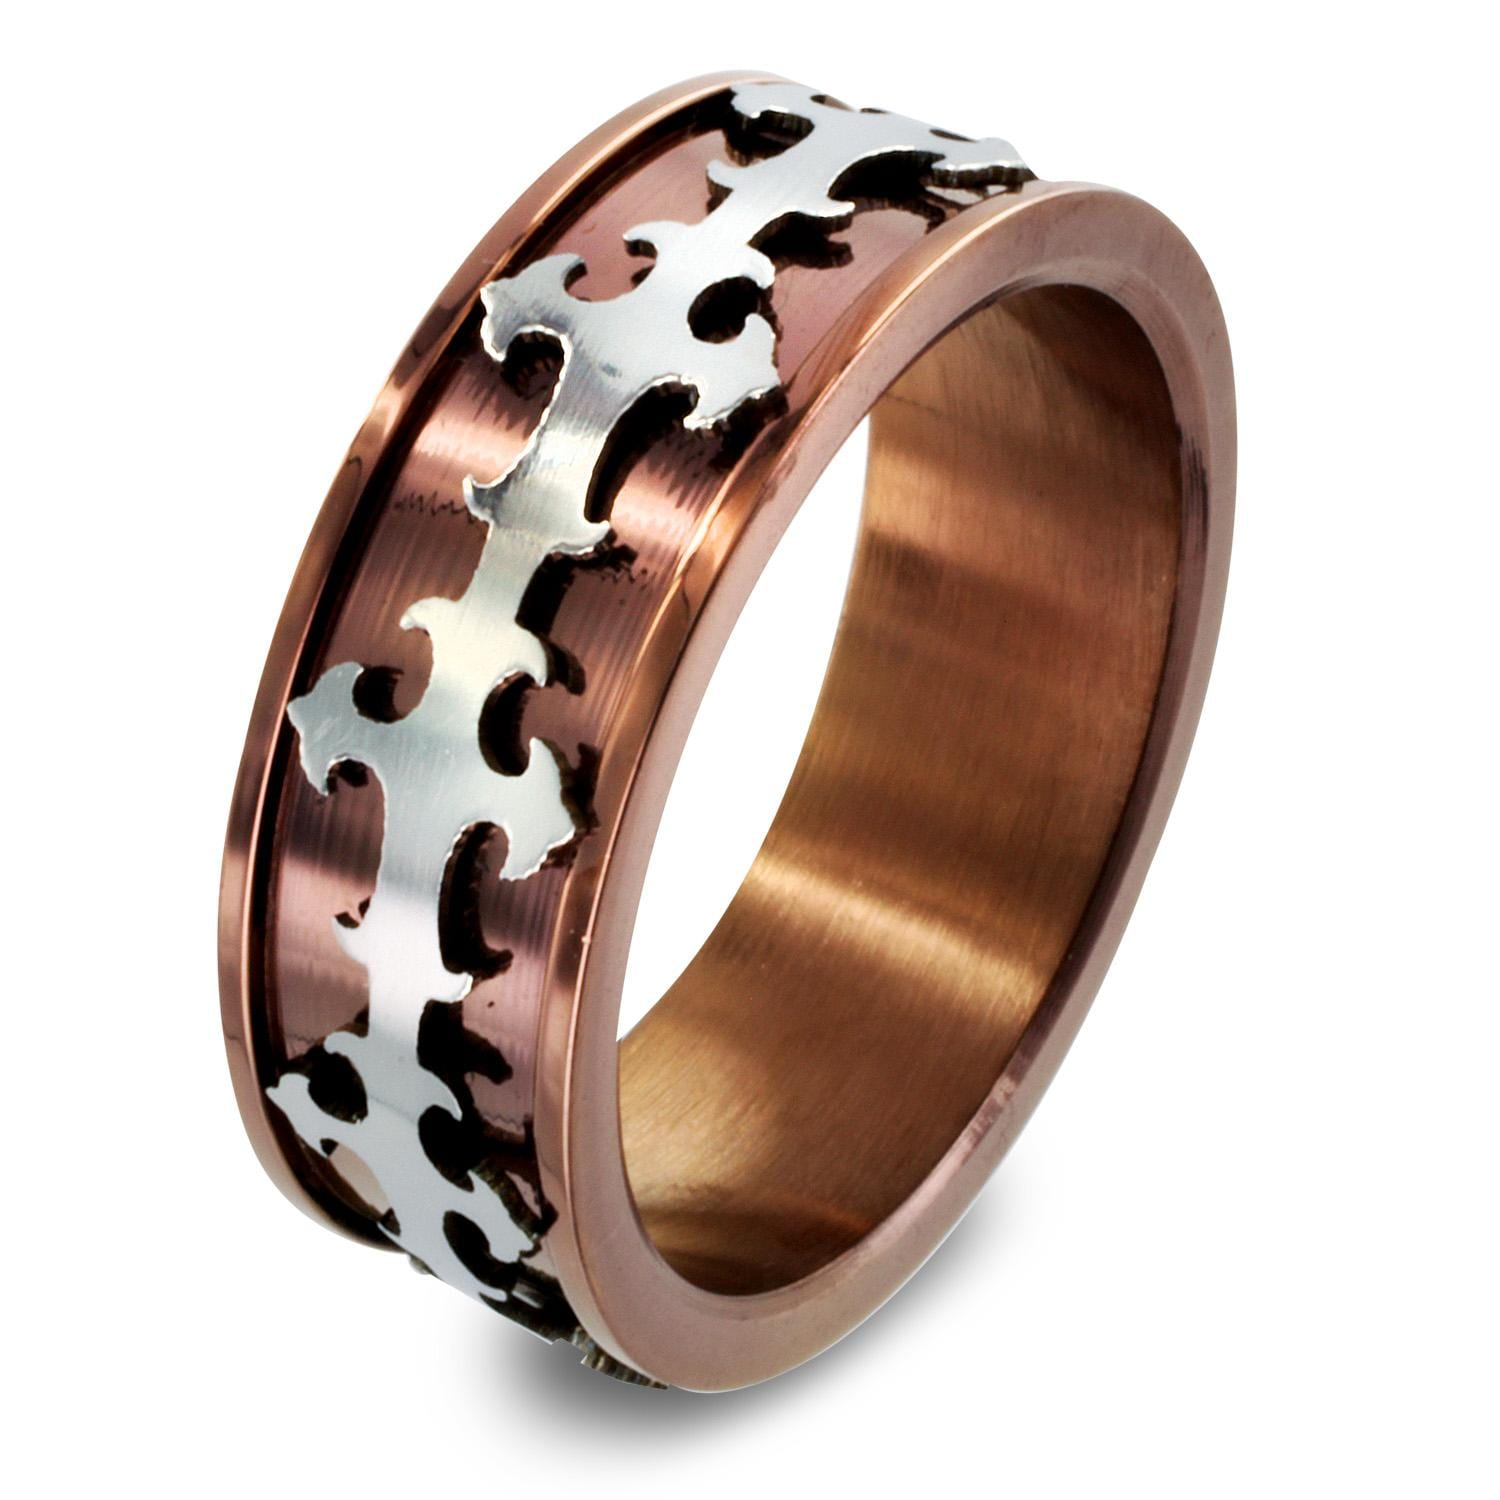 Stainless Steel Copper Plated Royal Cross Loop Center Band Ring